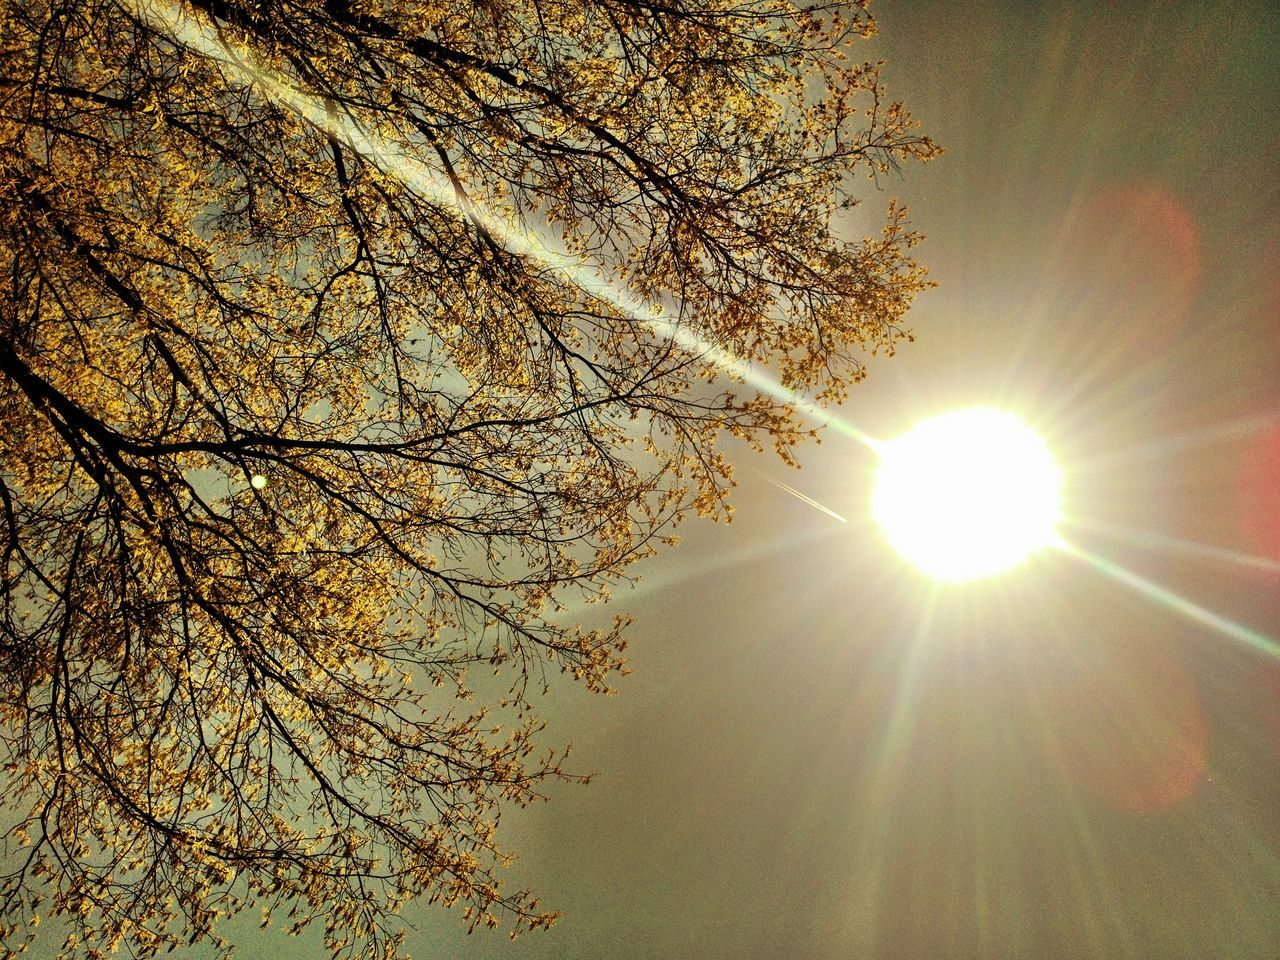 sun, tree, beauty in nature, nature, branch, sunbeam, lens flare, scenics, sunlight, tranquility, sunset, no people, tranquil scene, sky, outdoors, low angle view, bare tree, growth, day